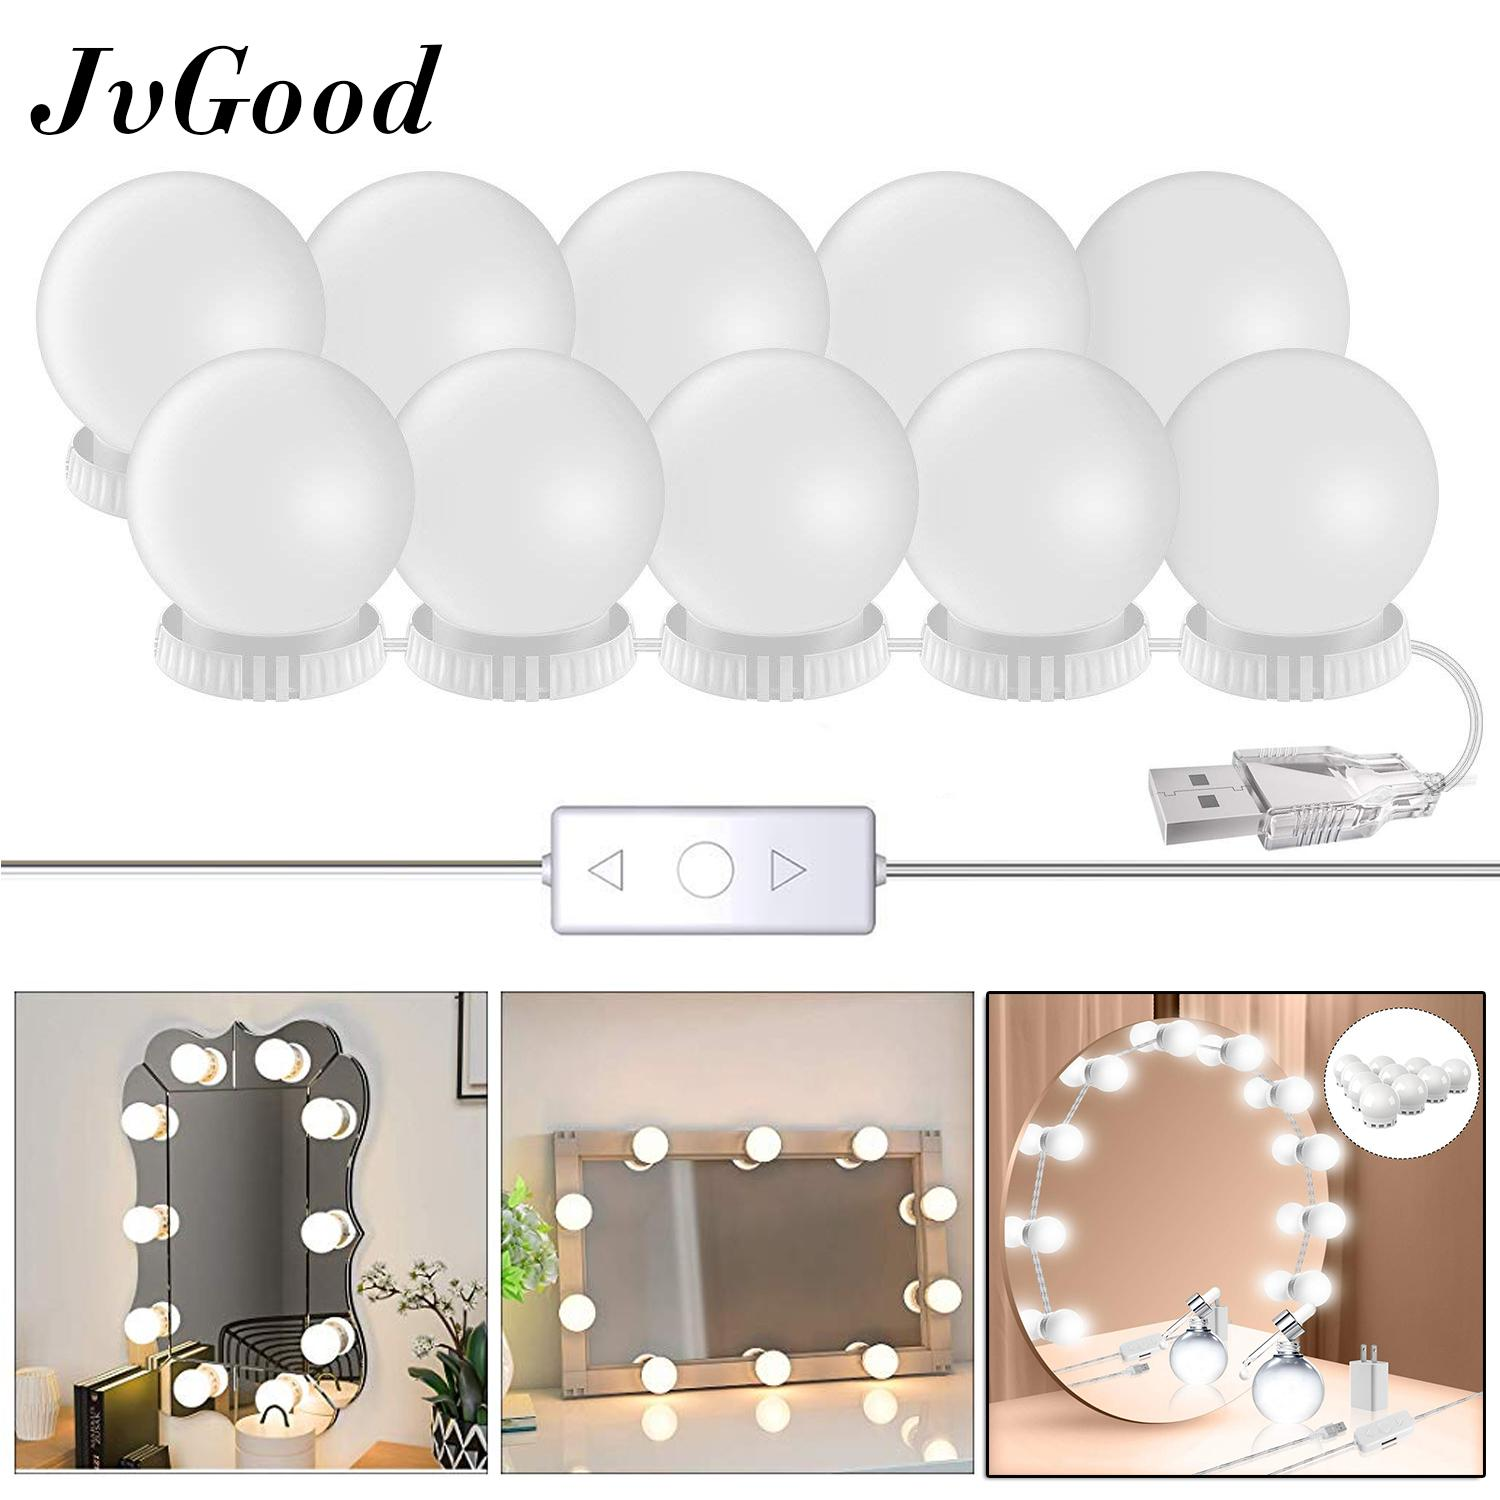 JvGood LED Mirror Lights Make Up Vanity Mirror Light with 10 Light Bulbs for Makeup Dressing Table Lighting Strip Hollywood Style Philippines